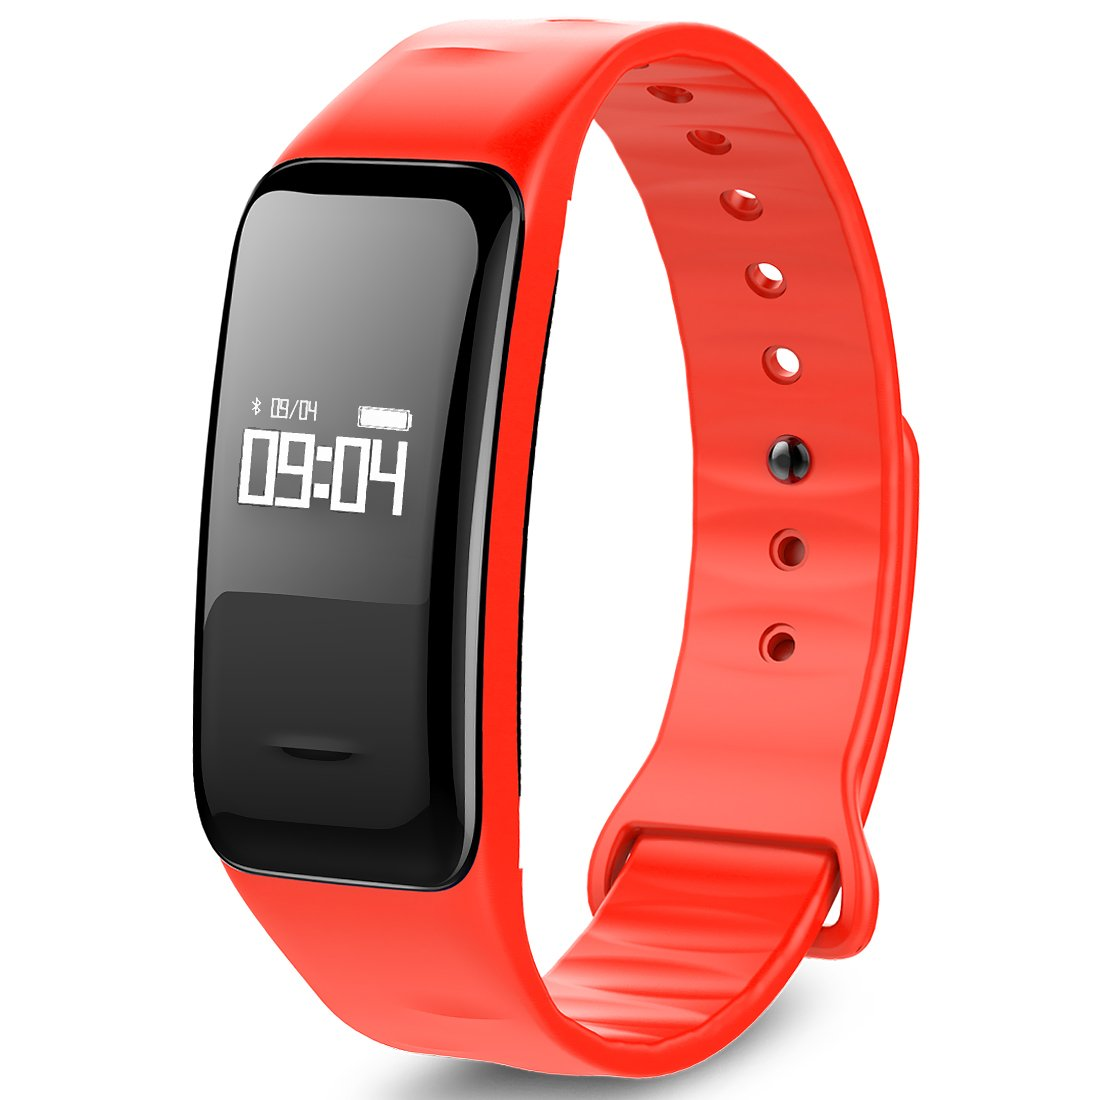 MBHB Health Fitness Tracker, Oxygen Blood Pressure/Heart Rate monitor, Waterproof Pedometer Smart Watch for Android and iOS, Red